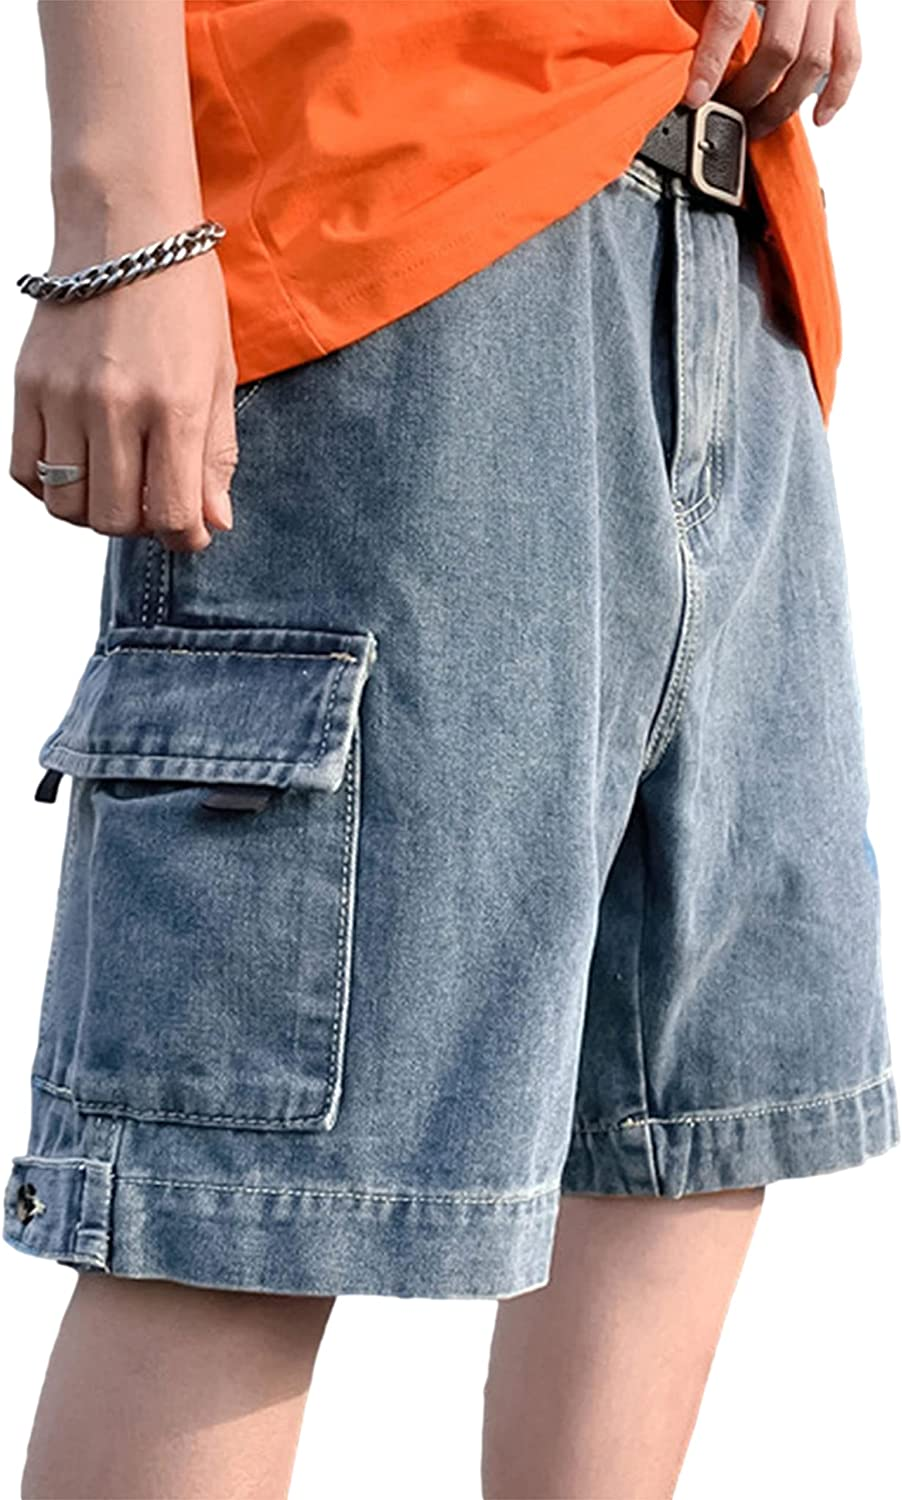 Zontroldy Mens Cargo Shorts Summer Relaxed Workout Denim Jean Shorts with Pockets